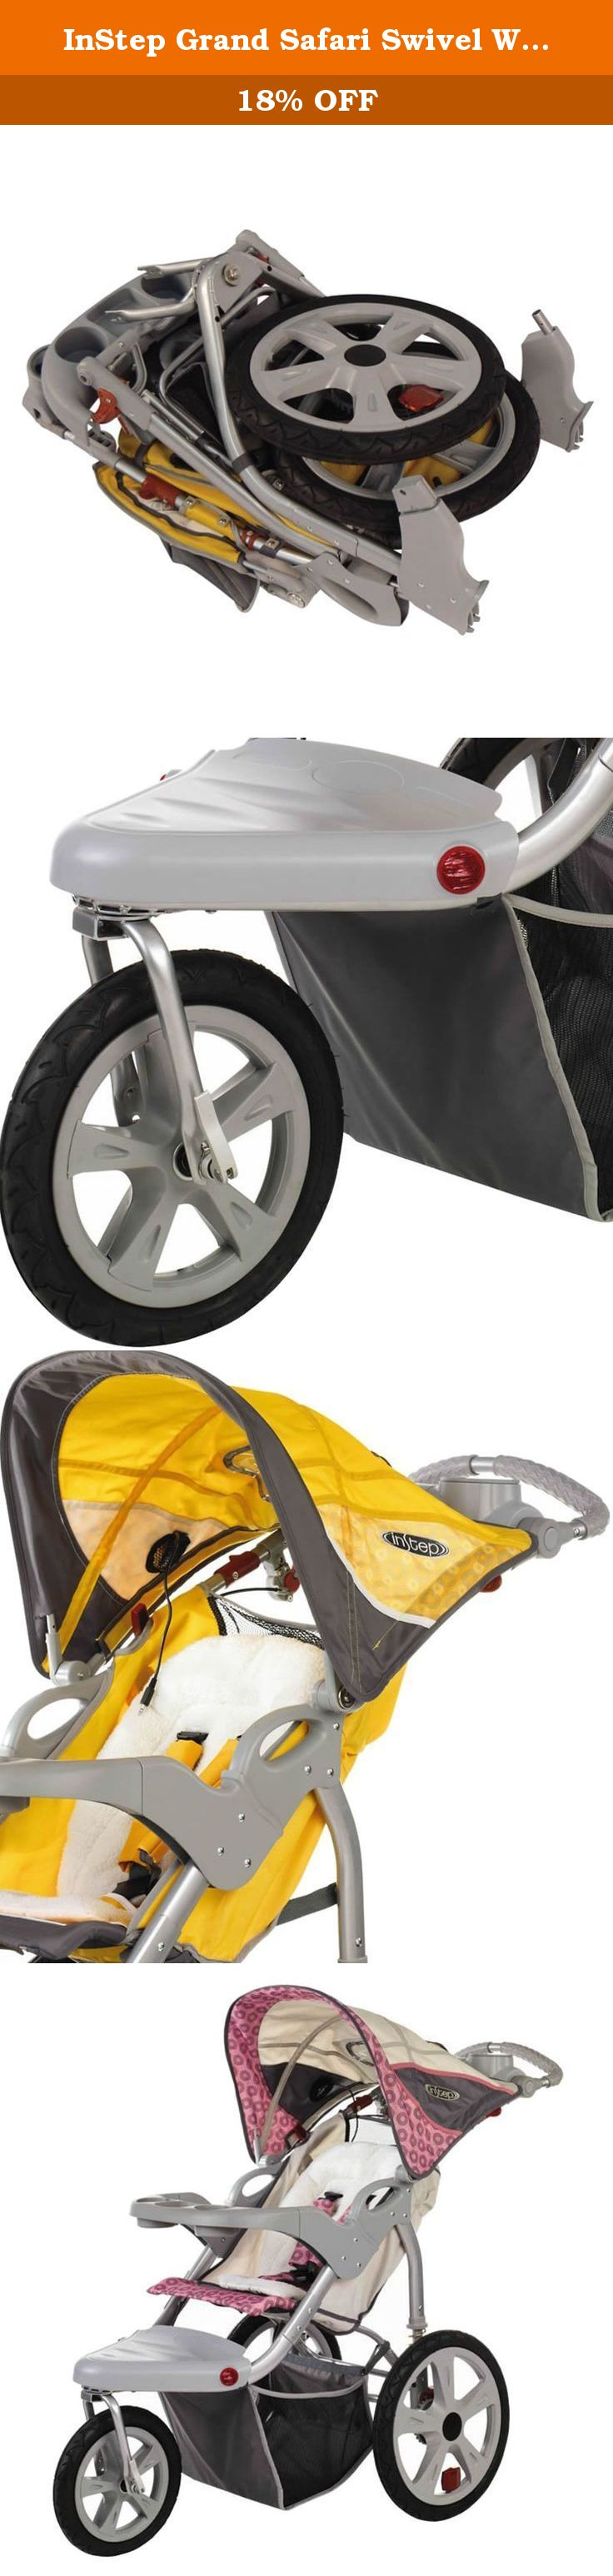 Pin on Joggers, Strollers, Strollers & Accessories, Baby